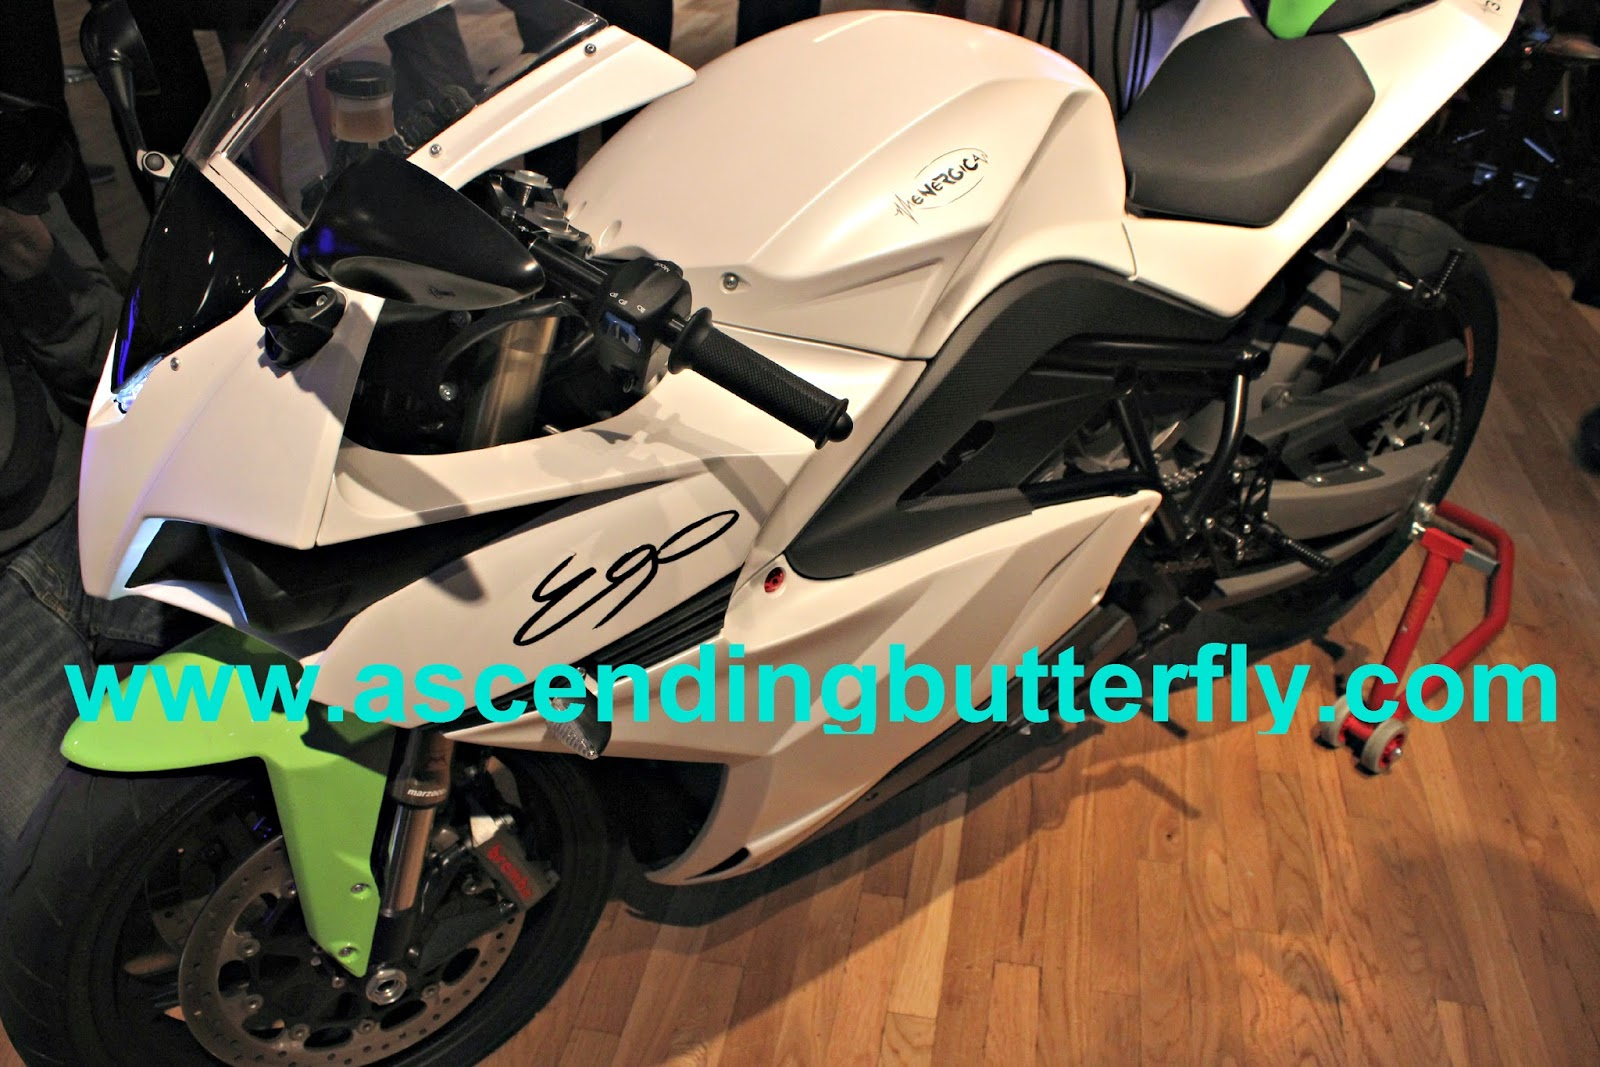 Energica Superbike at The Luxury Review in New York City 2014, motorcycle